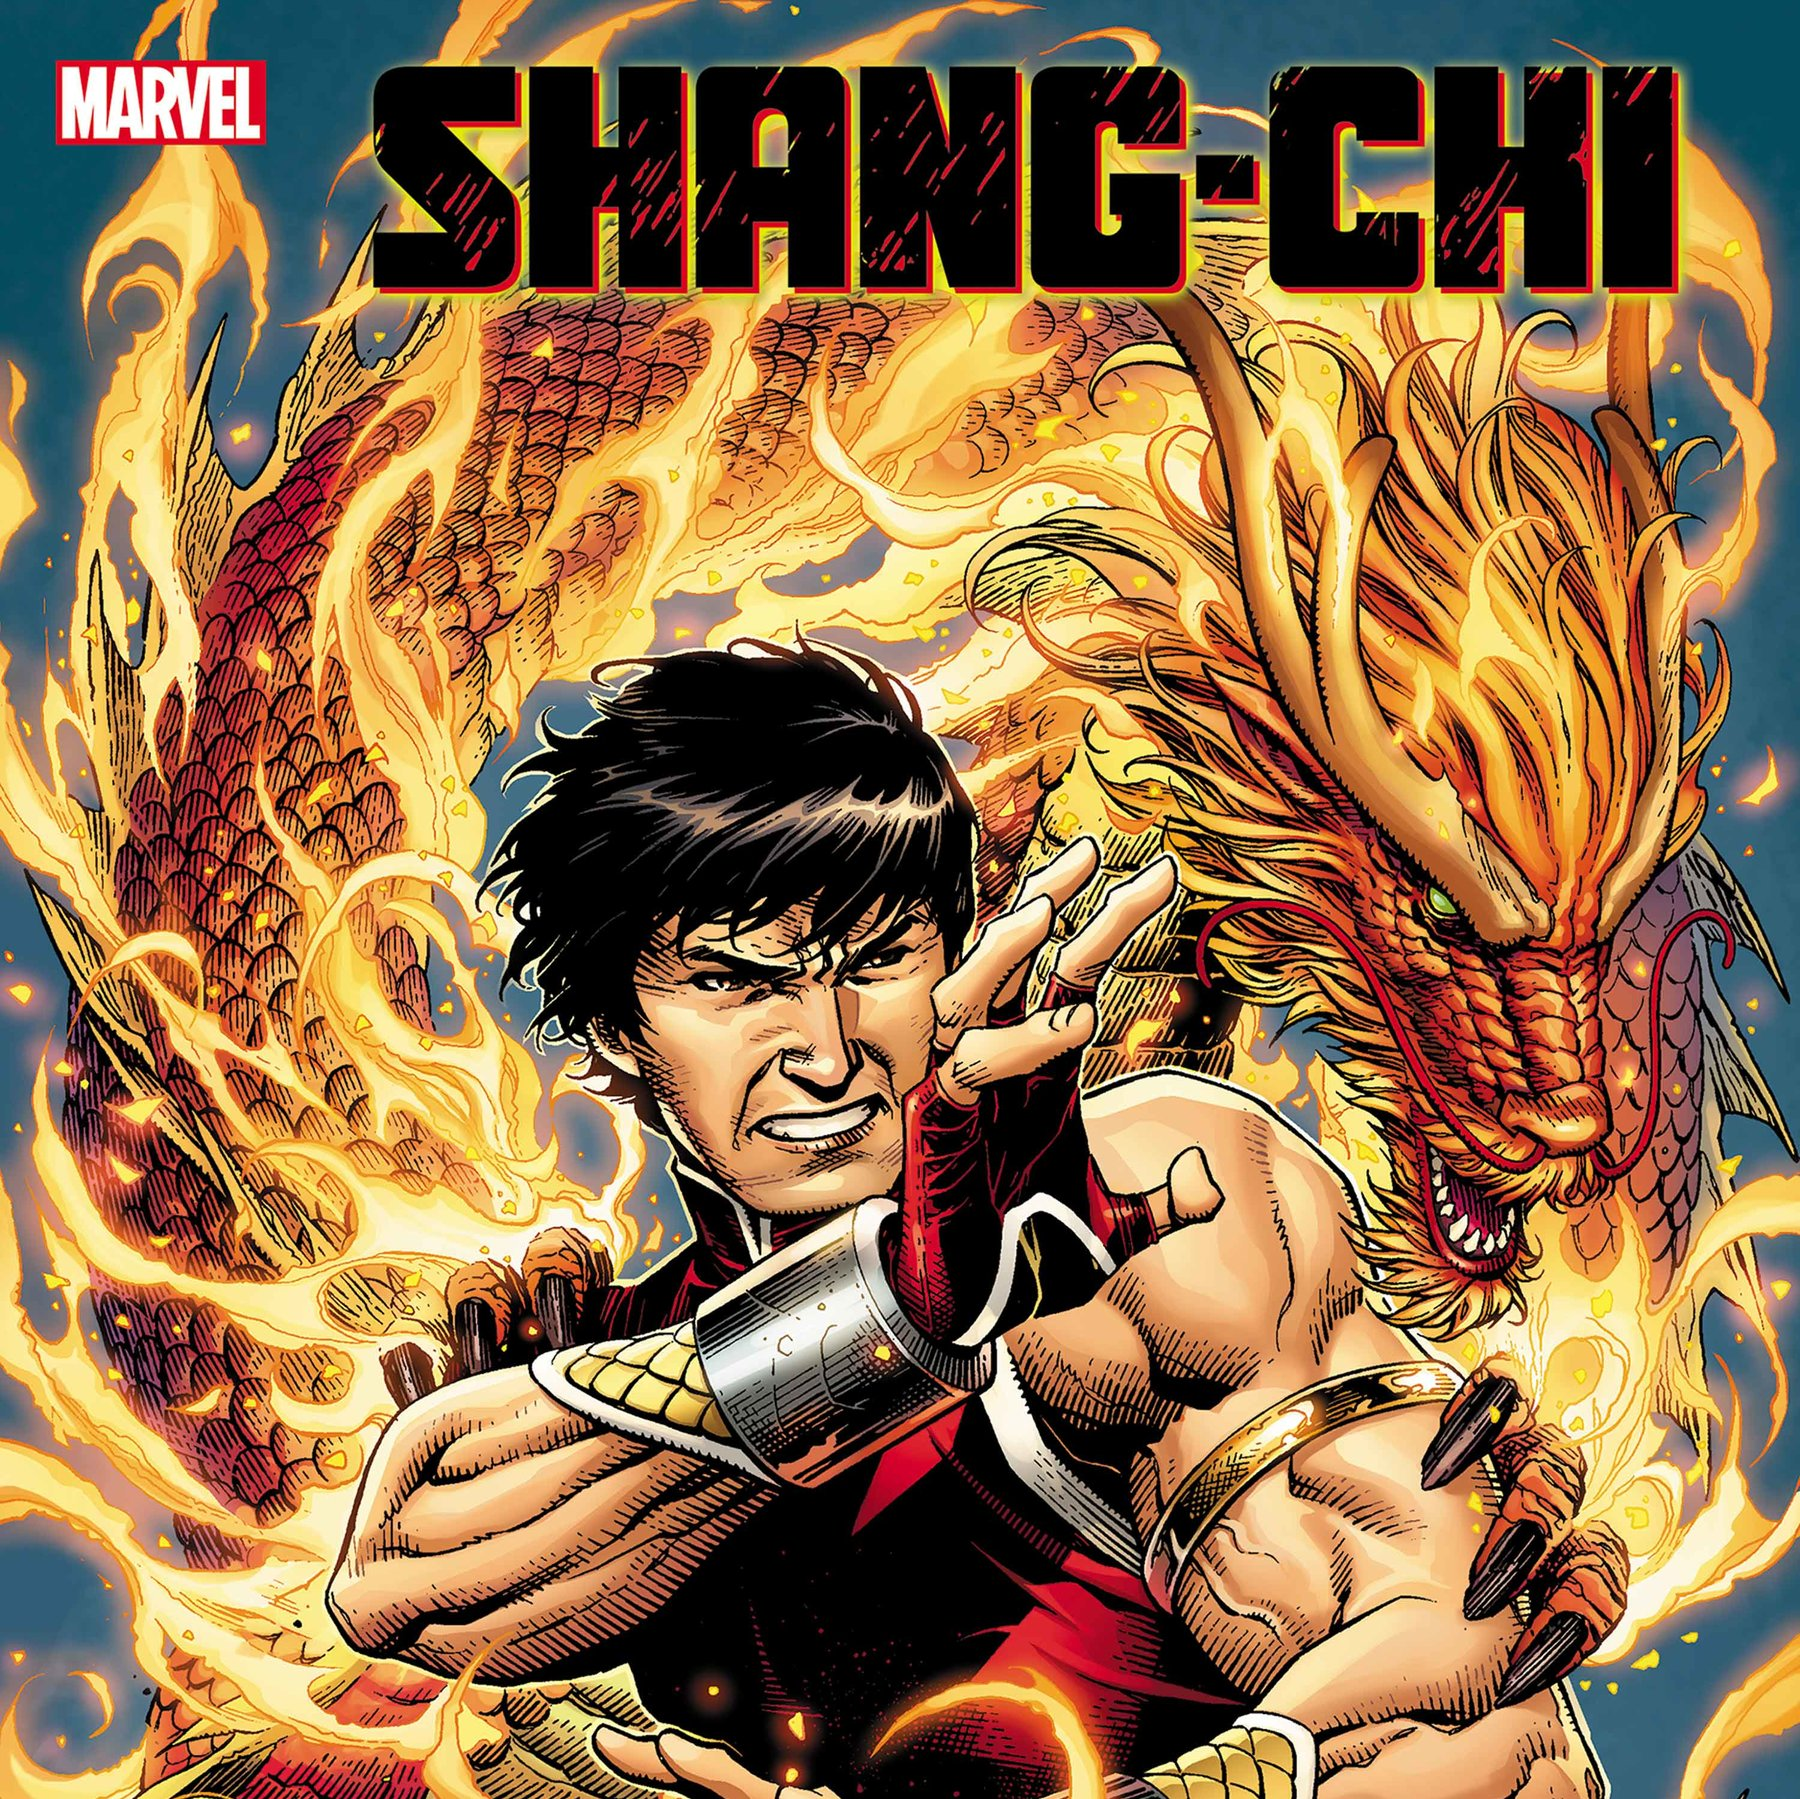 Poster of the upcoming Marvel film - Shang Chi.